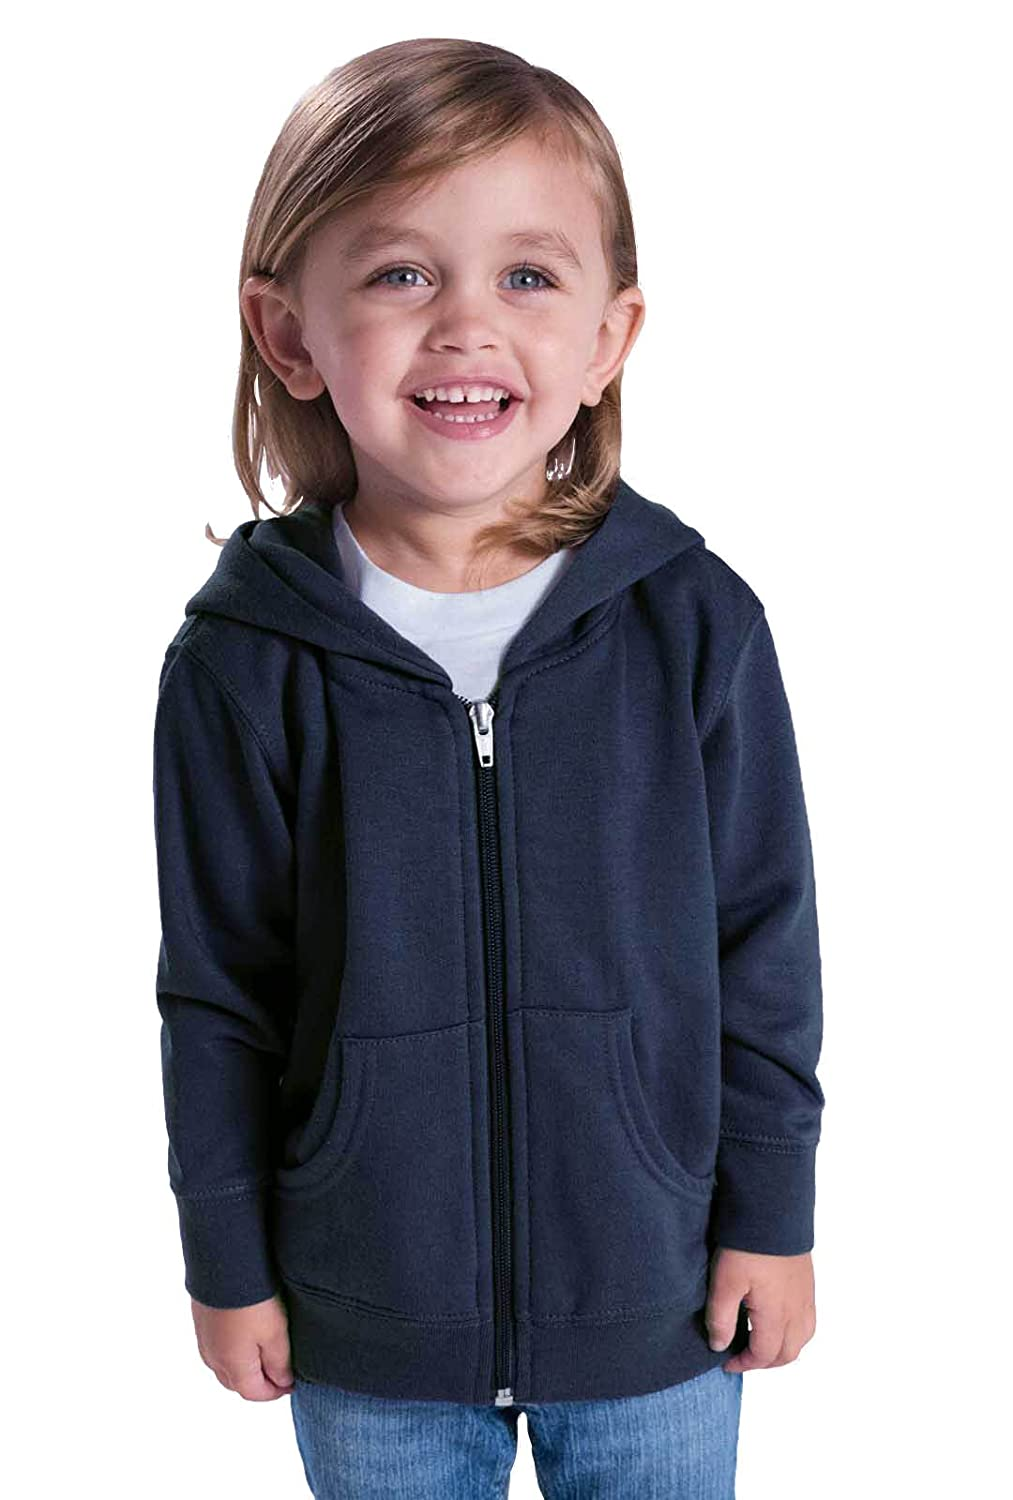 Rabbit Skins Infant Fleece Long Sleeve Full Zip Hooded Sweatshirt with Pouch Pockets M26825